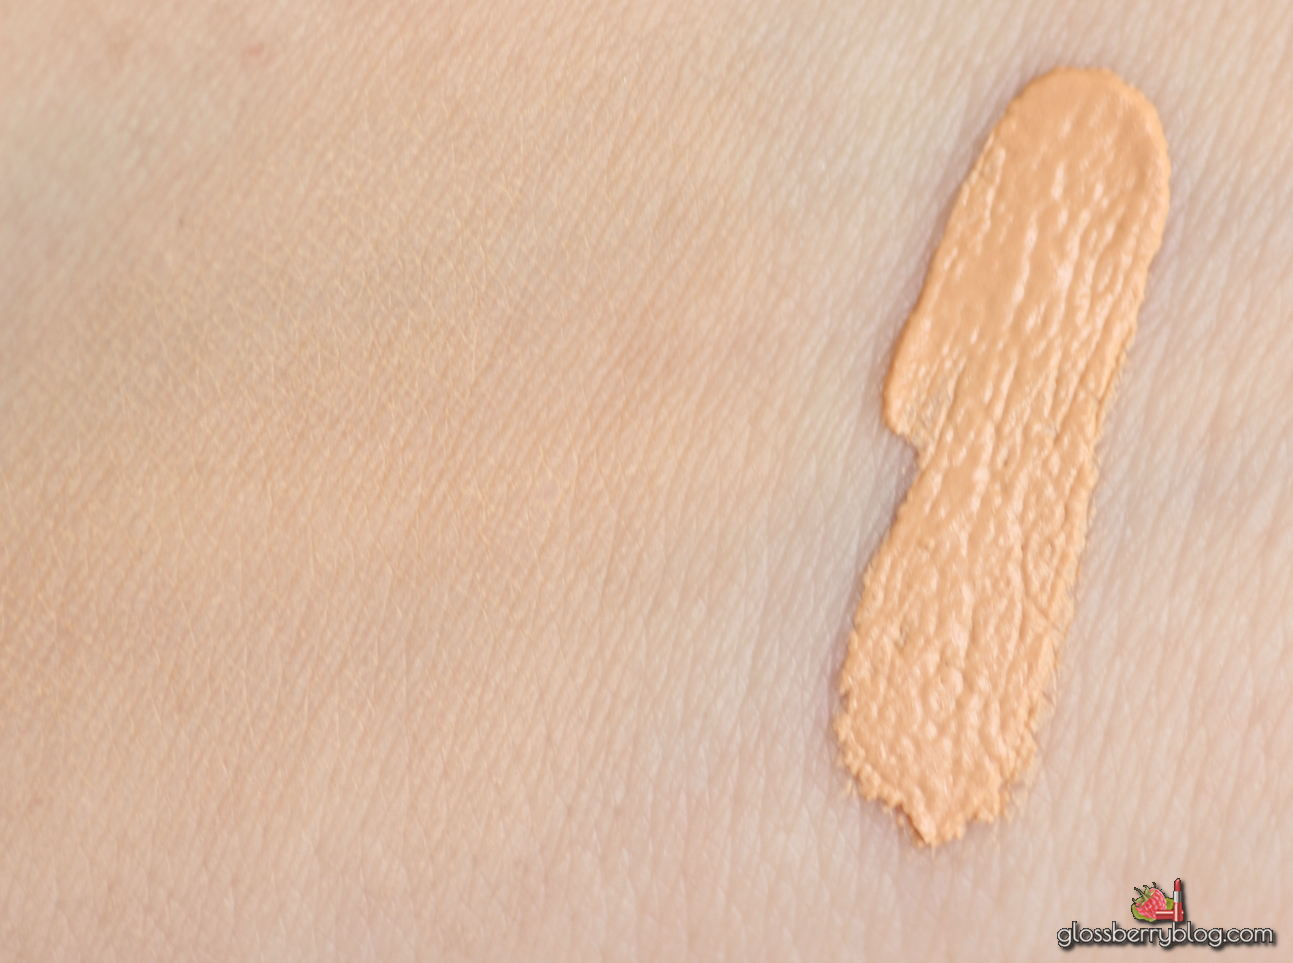 Bourjois - Nude Sensation Blur Effect Foundation  - Nude Clair 41 review swatch swatches recommendation dry fair skin oily מייקאפ מוס בורז'ואה בלוג איפור וטיפוח גלוסברי mousse cream velvet matte